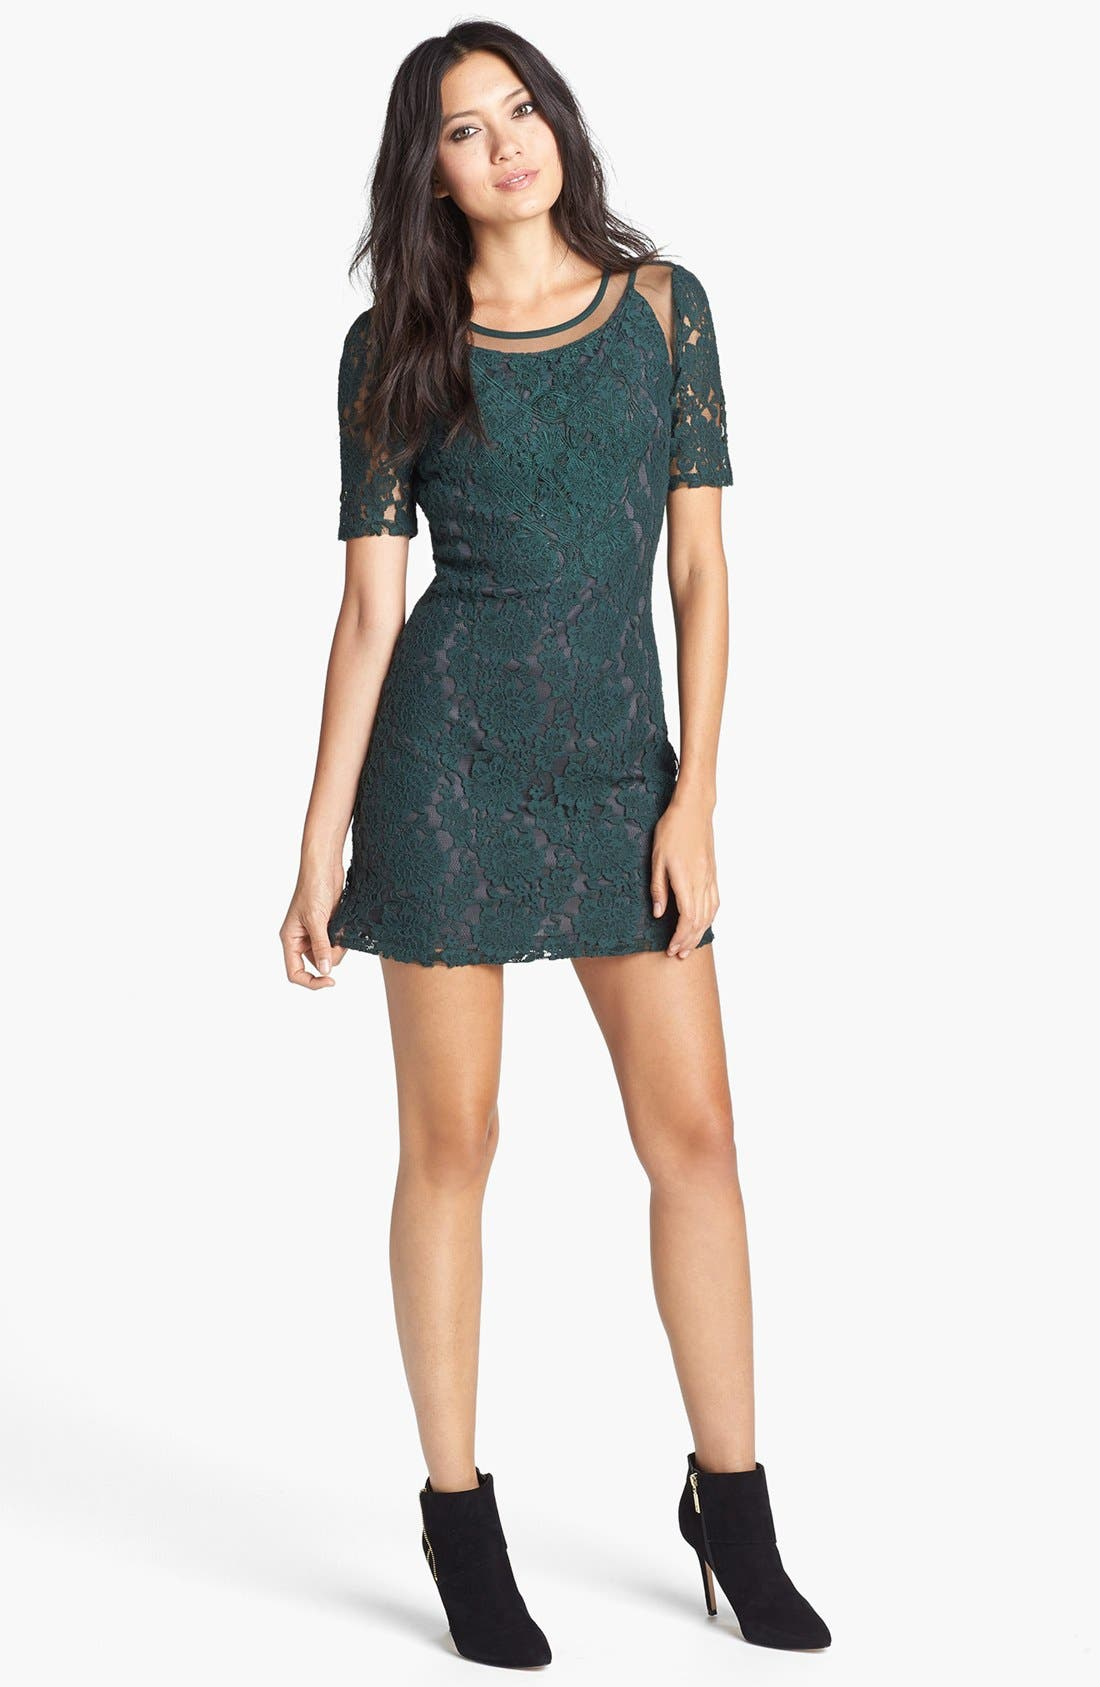 Main Image - ASTR Mesh Inset Lace Dress